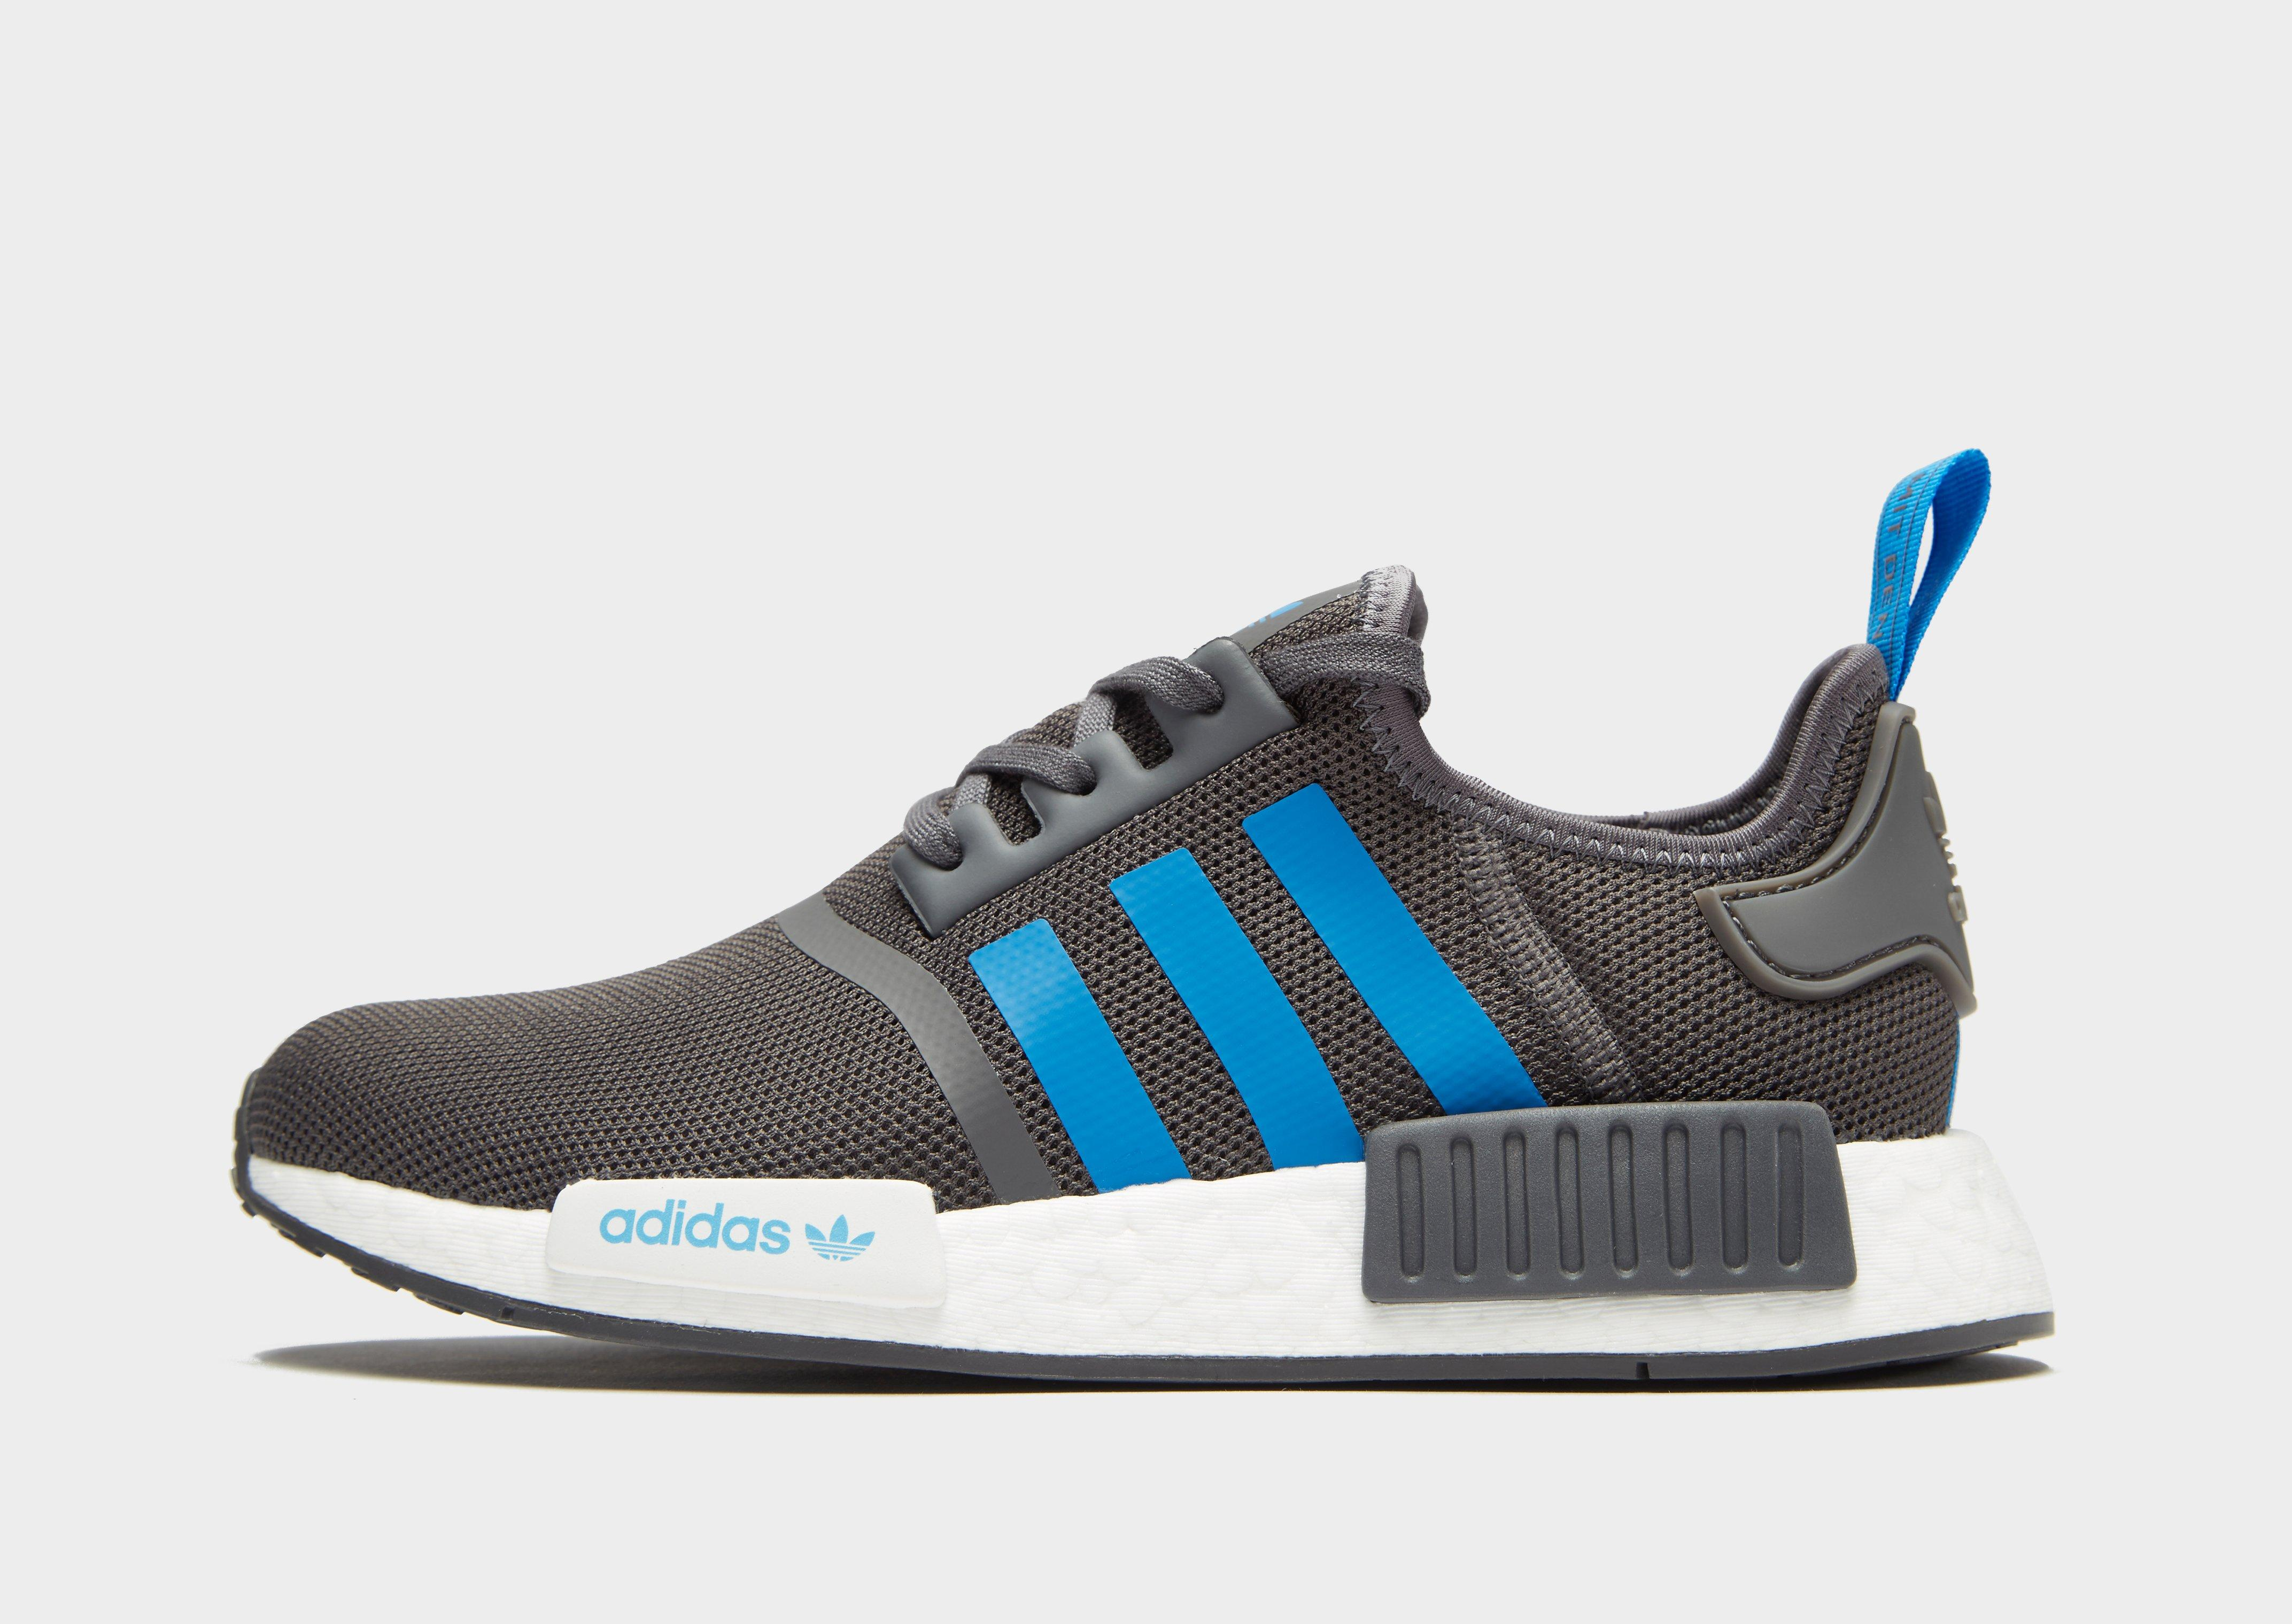 Vente en gros adidas nmd junior Pas cher commulangues.be